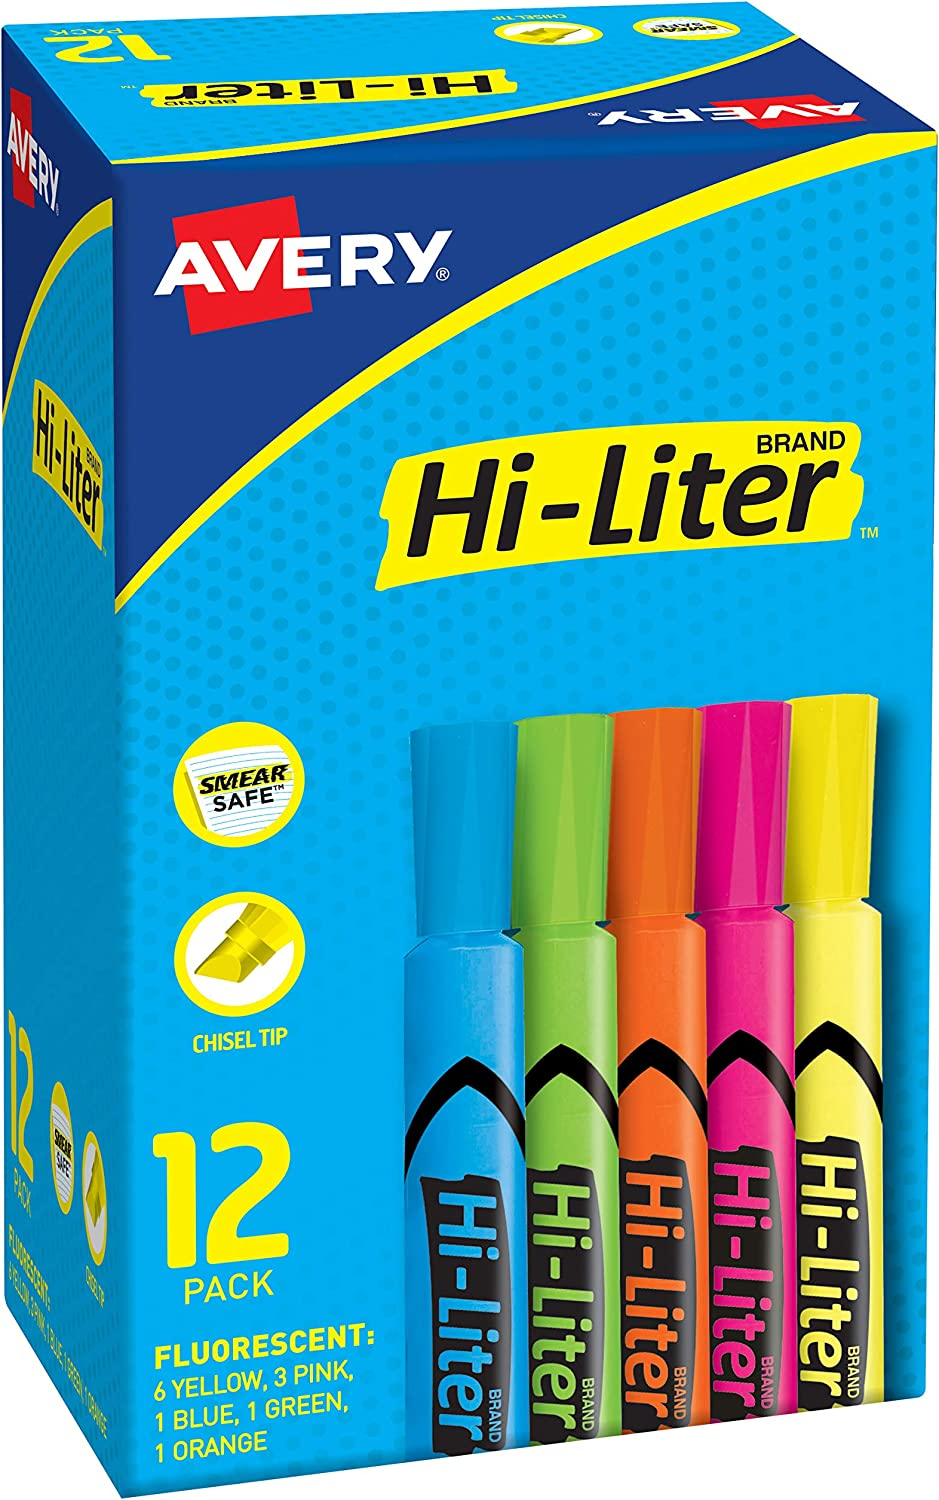 HI-LITER Avery Desk-Style Highlighters Chisel Charlotte Mall specialty shop 12 Tip